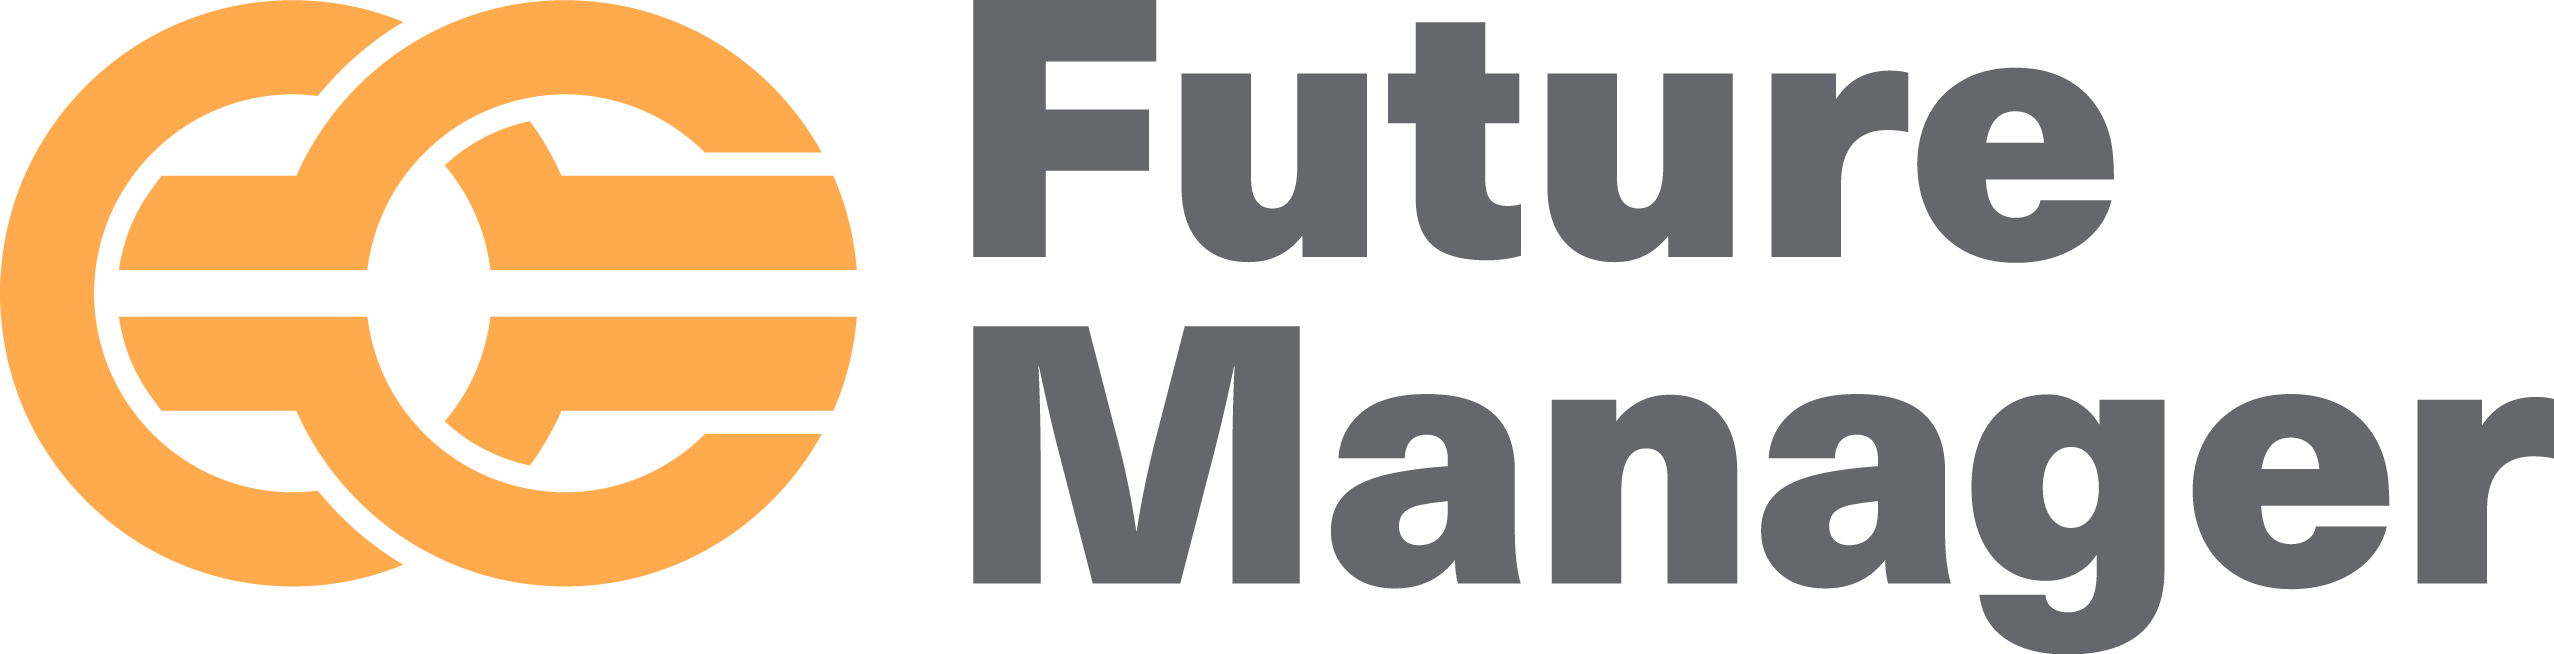 Future Manager - Born-Global for your Company